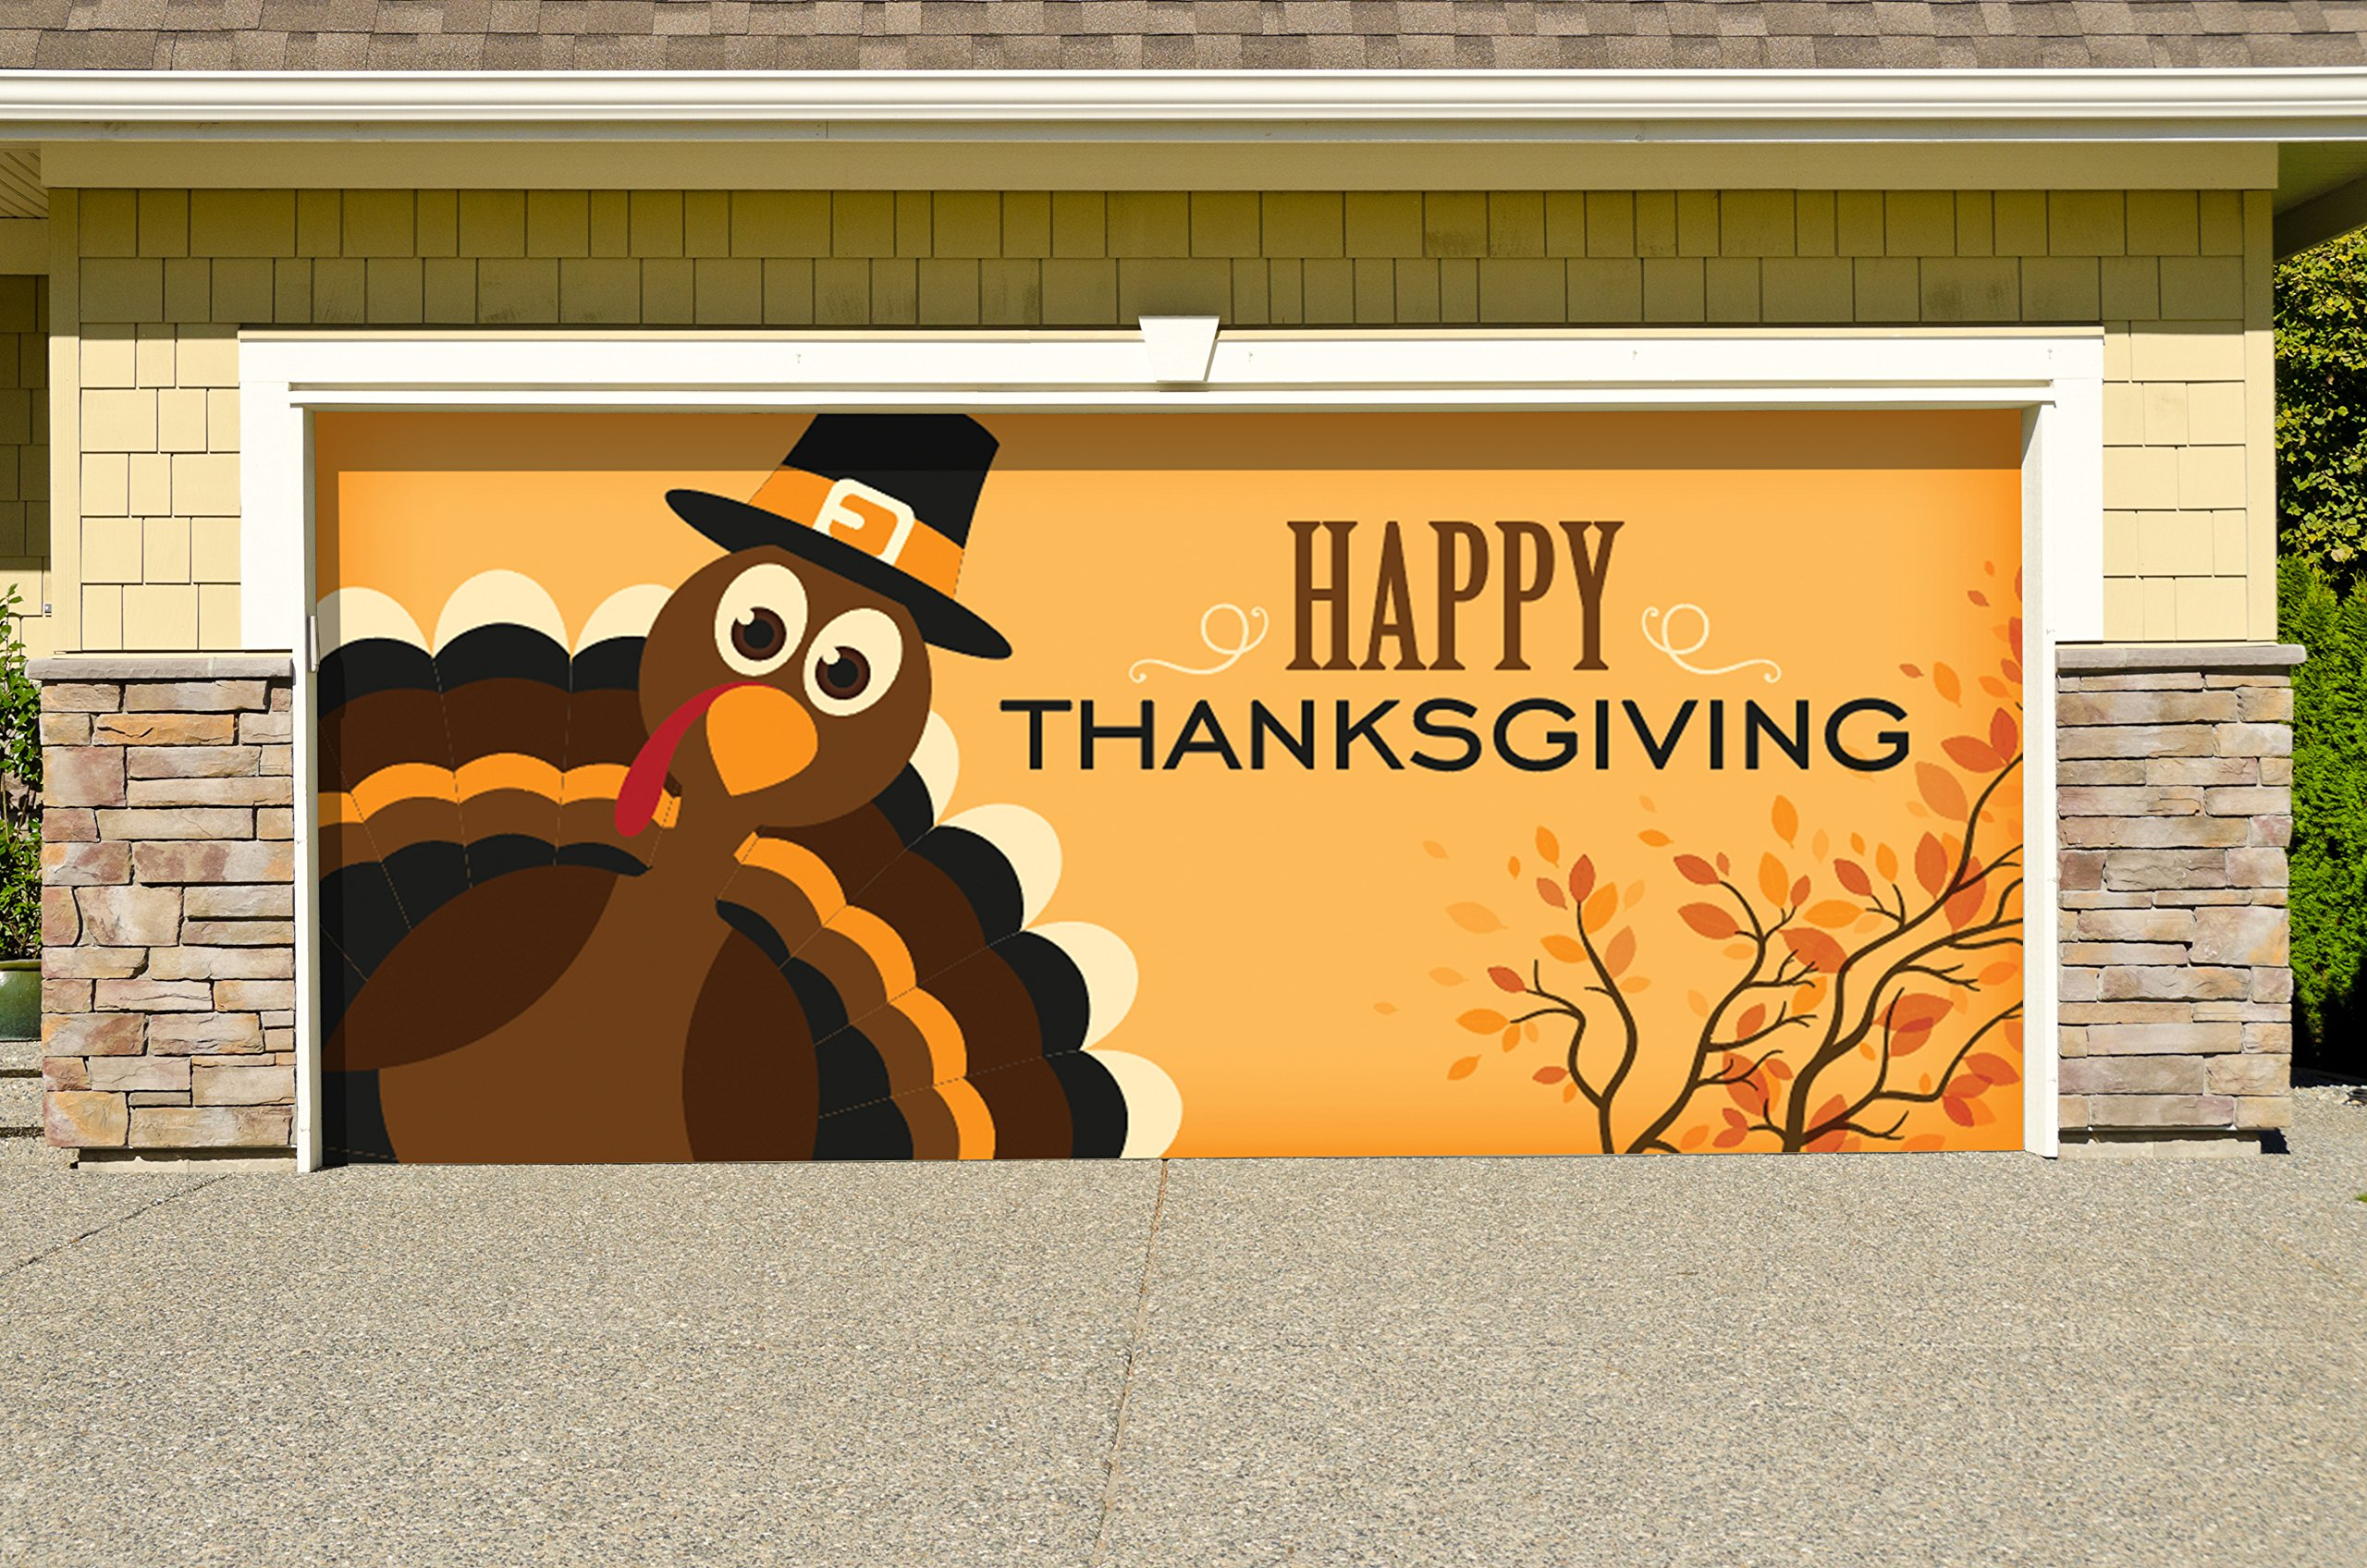 Victory Corps Outdoor Thanksgiving Holiday Garage Door Banner Cover Mural Décoration - Happy Thanksgiving Turkey - Outdoor Thanksgiving Holiday Garage Door Banner Décor Sign 7'x 8'